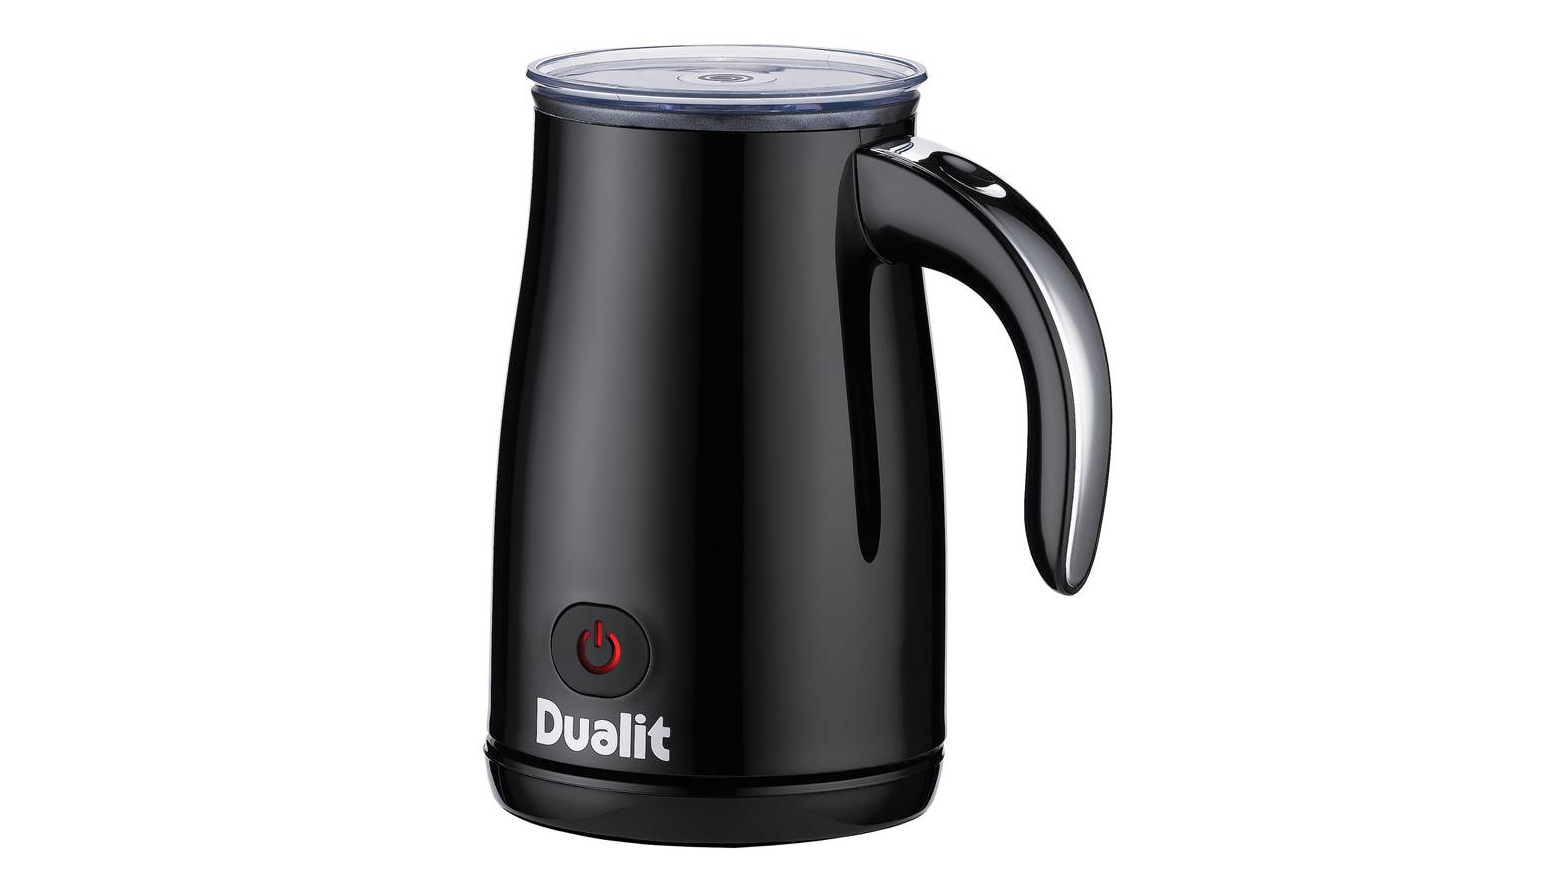 dualit milk frother instructions